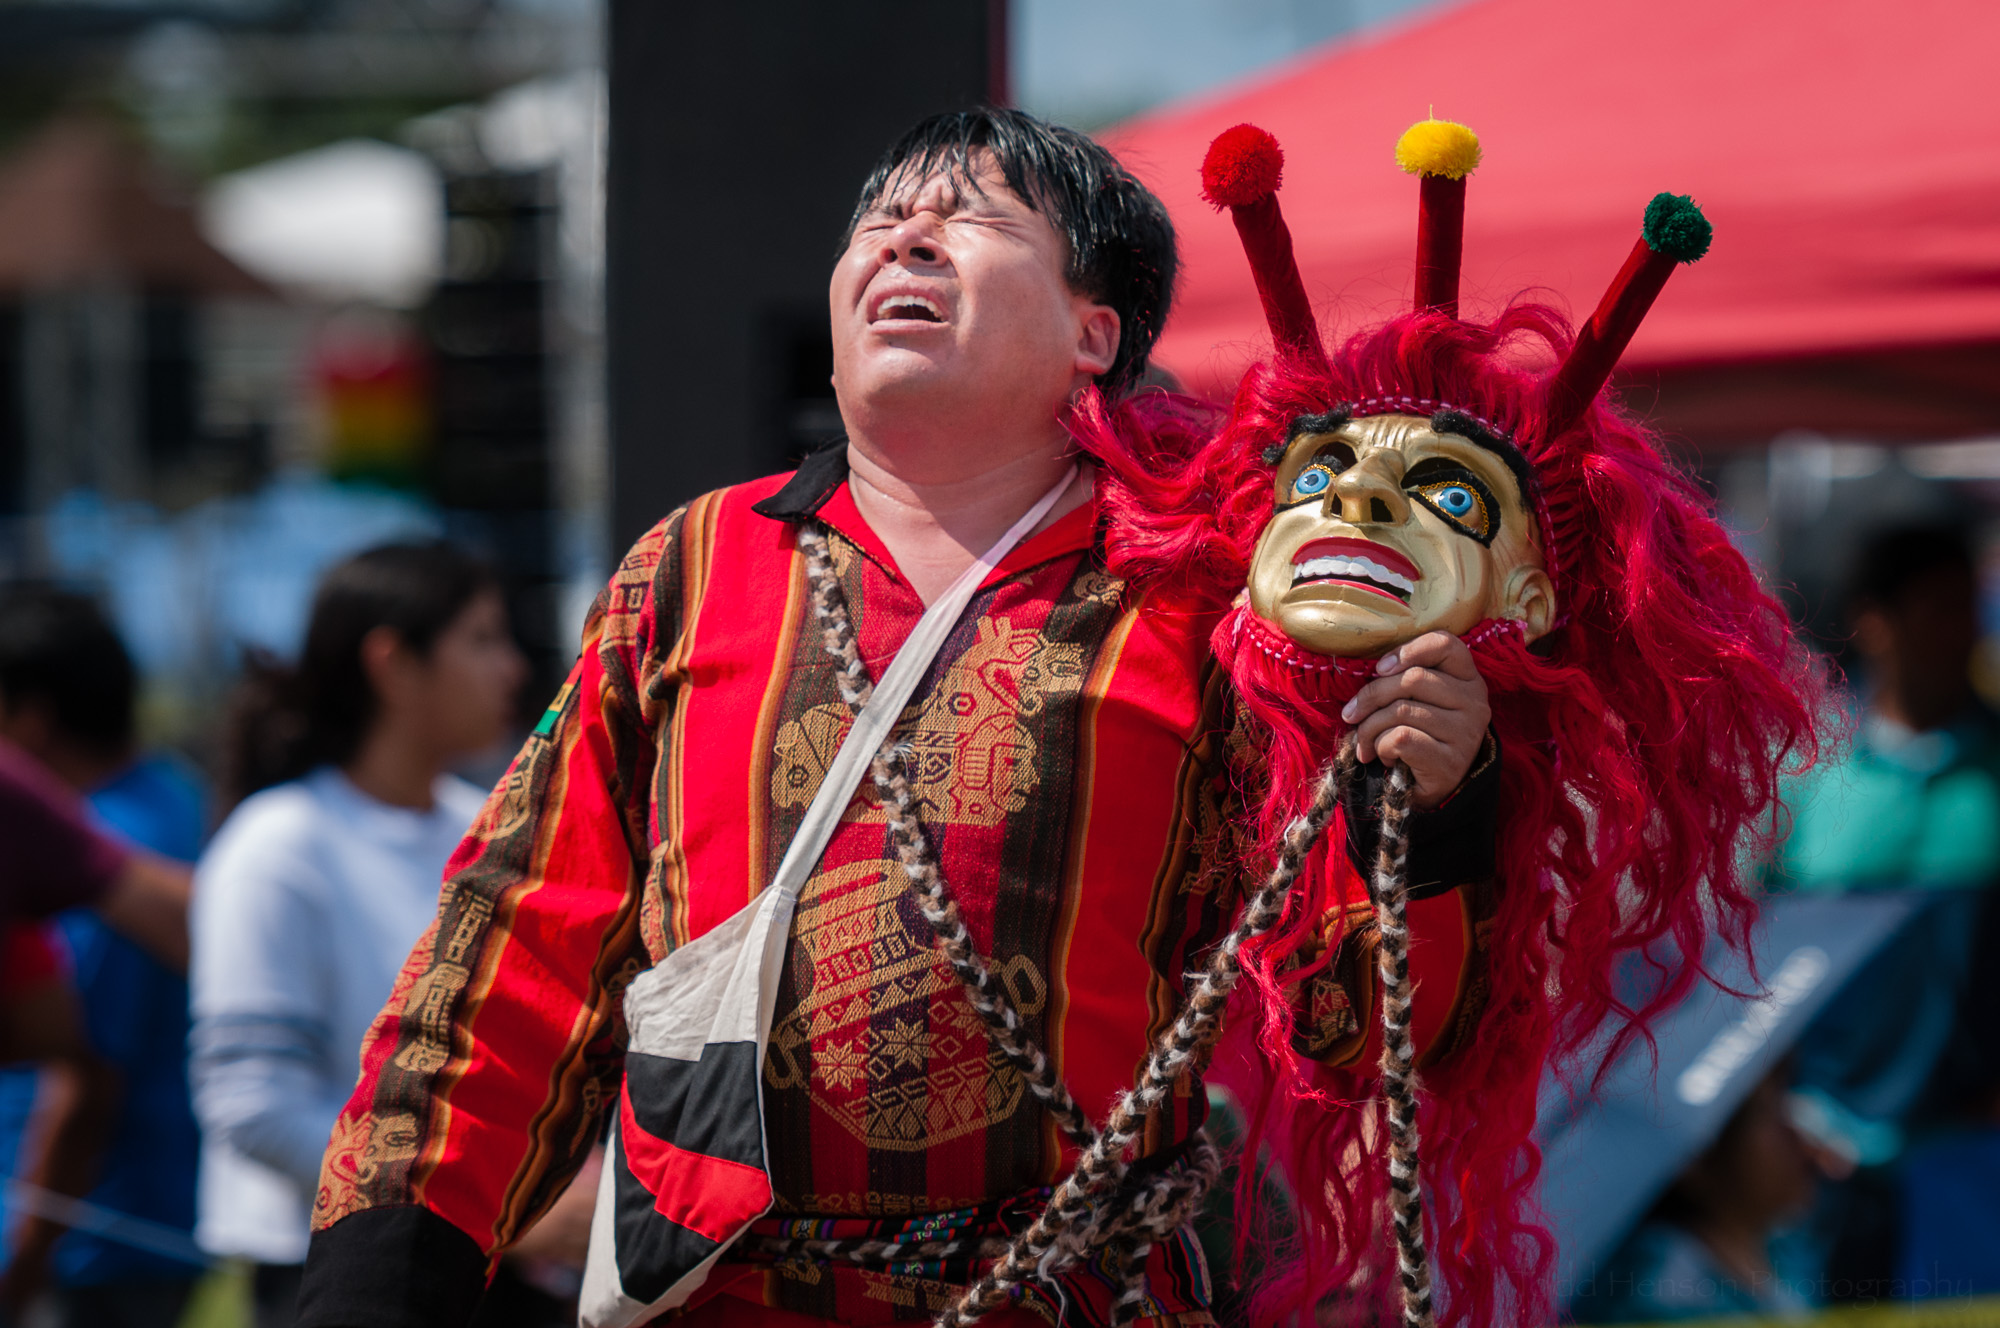 In this photo I captured the moment after the performer from Fundacion Socio Cultural Diablada Boliviana removed his mask after their final performance of a Wititi dance. You can see his exhaustion as he lifts his head towards the sun.